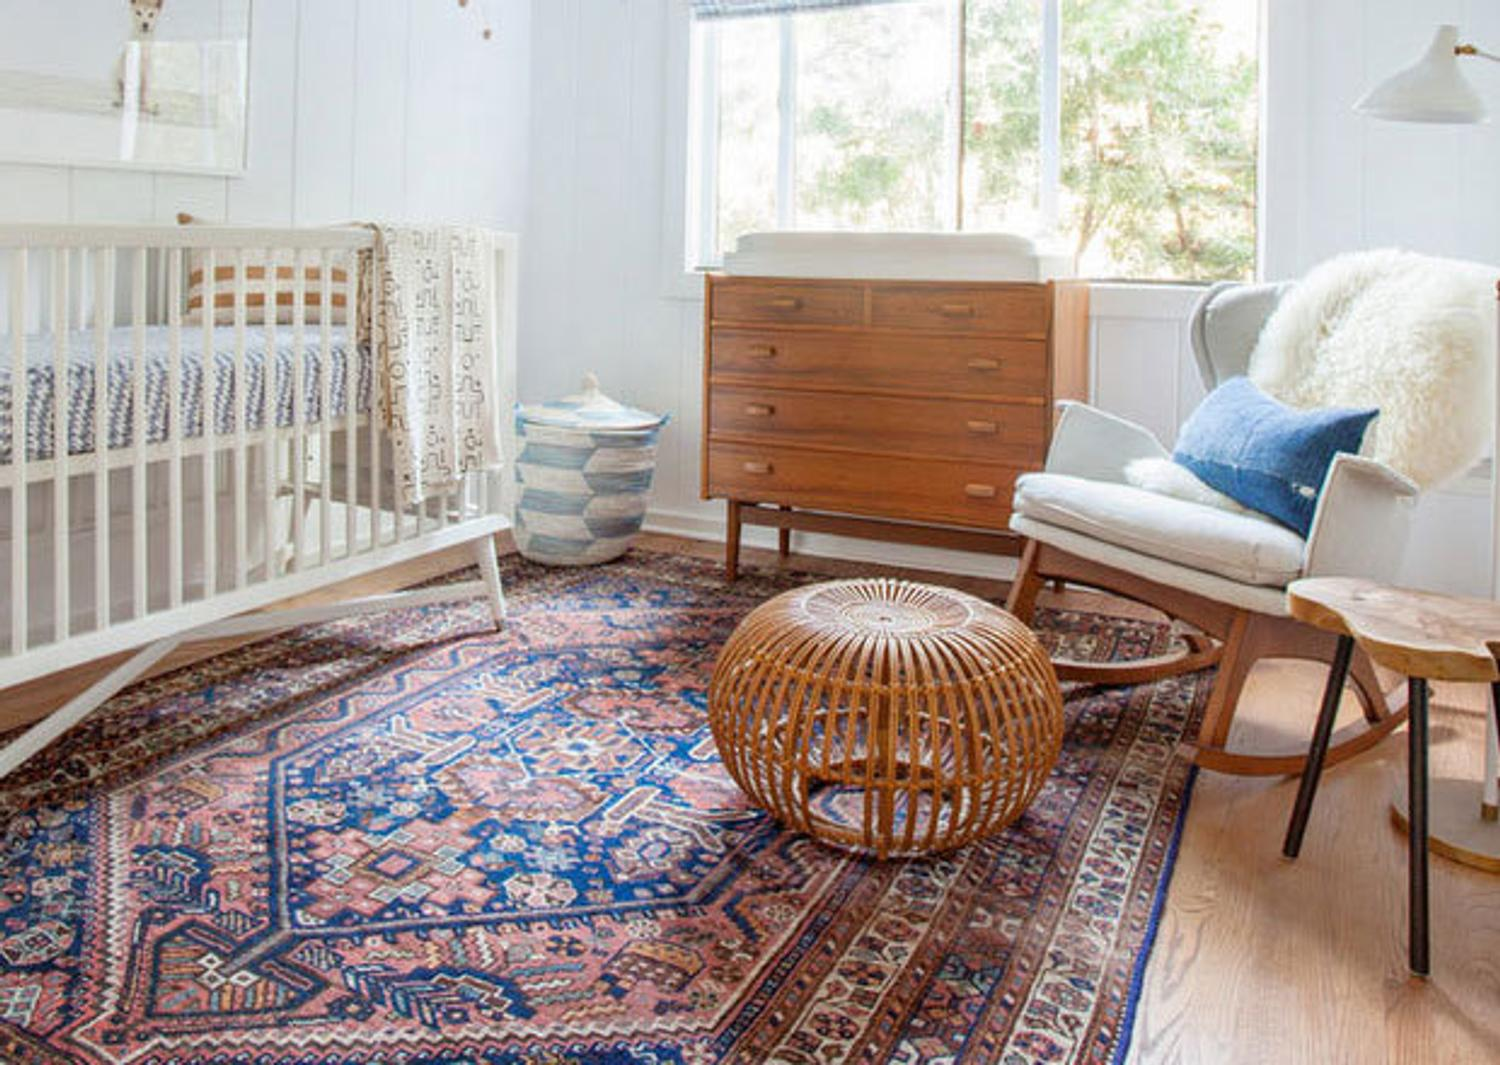 15 Tips For Decorating With Antique Rugs Nazmiyal